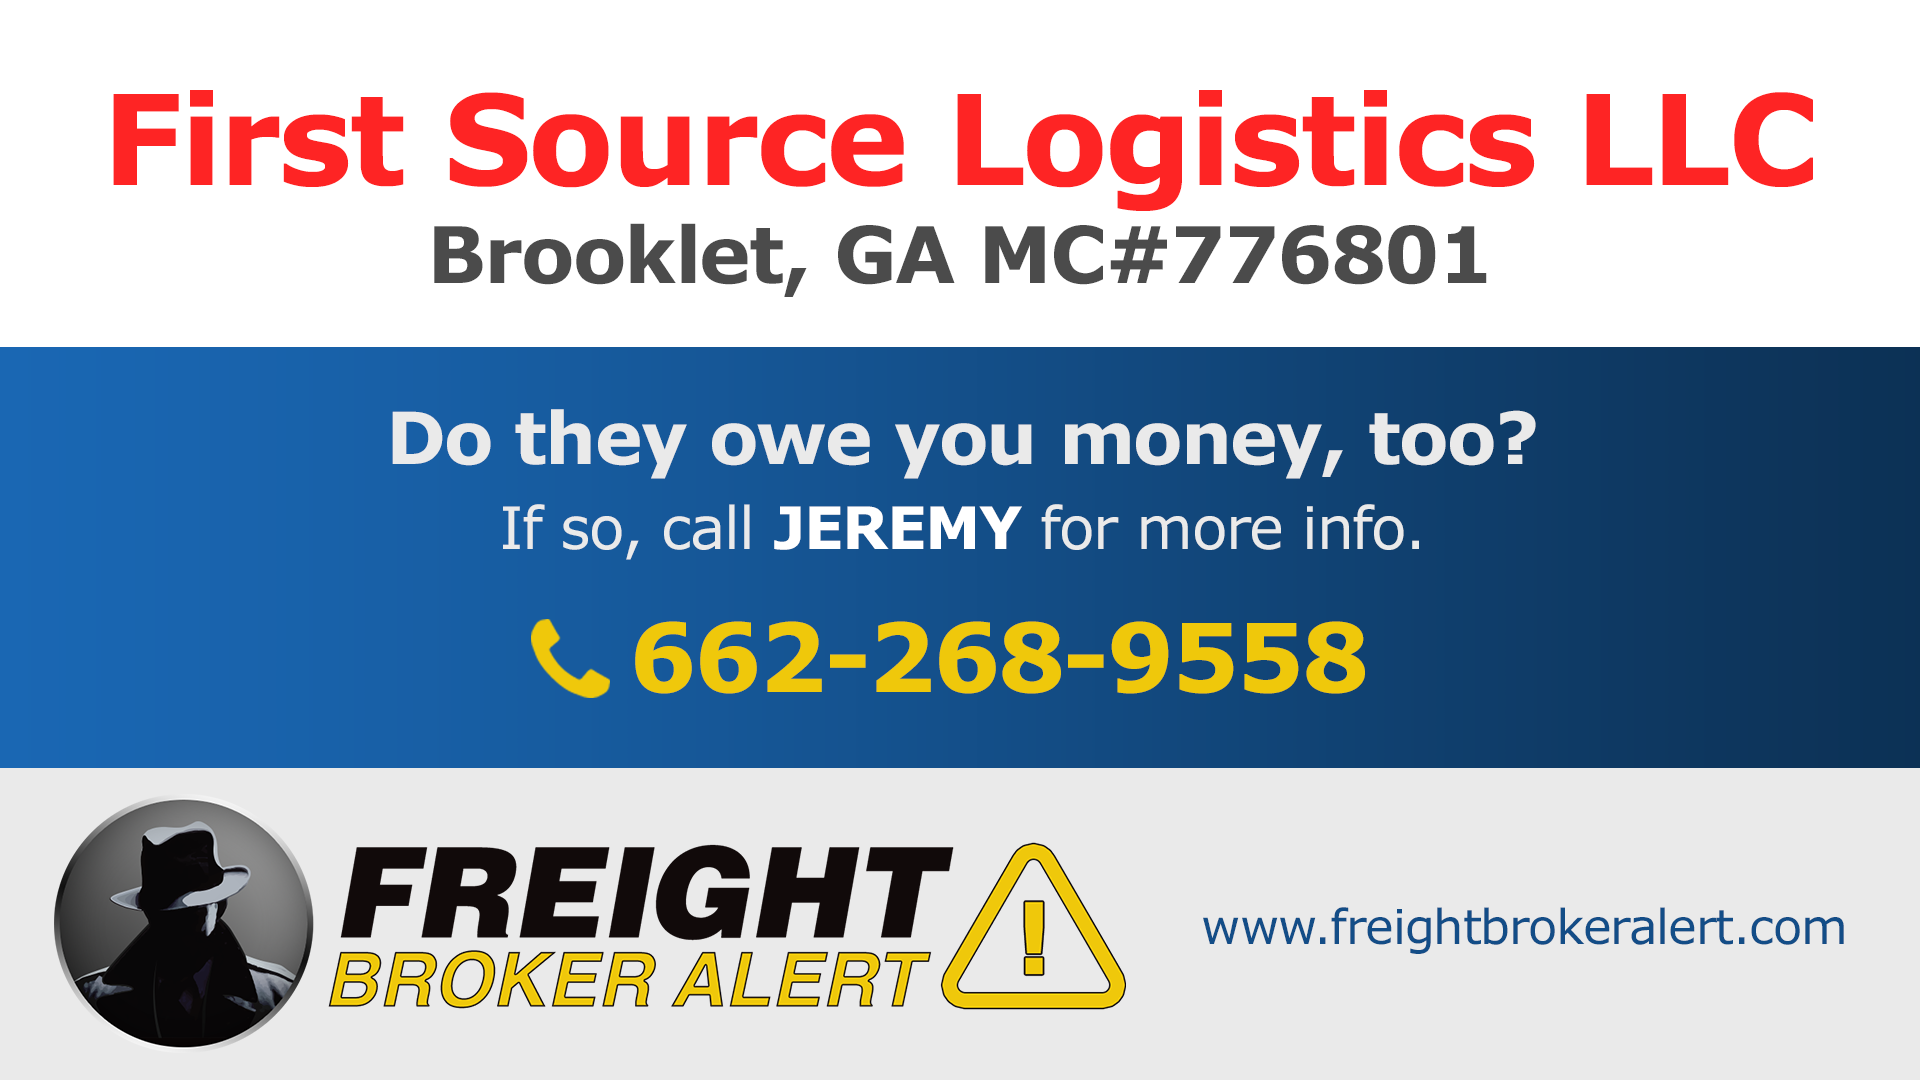 First Source Logistics LLC Georgia